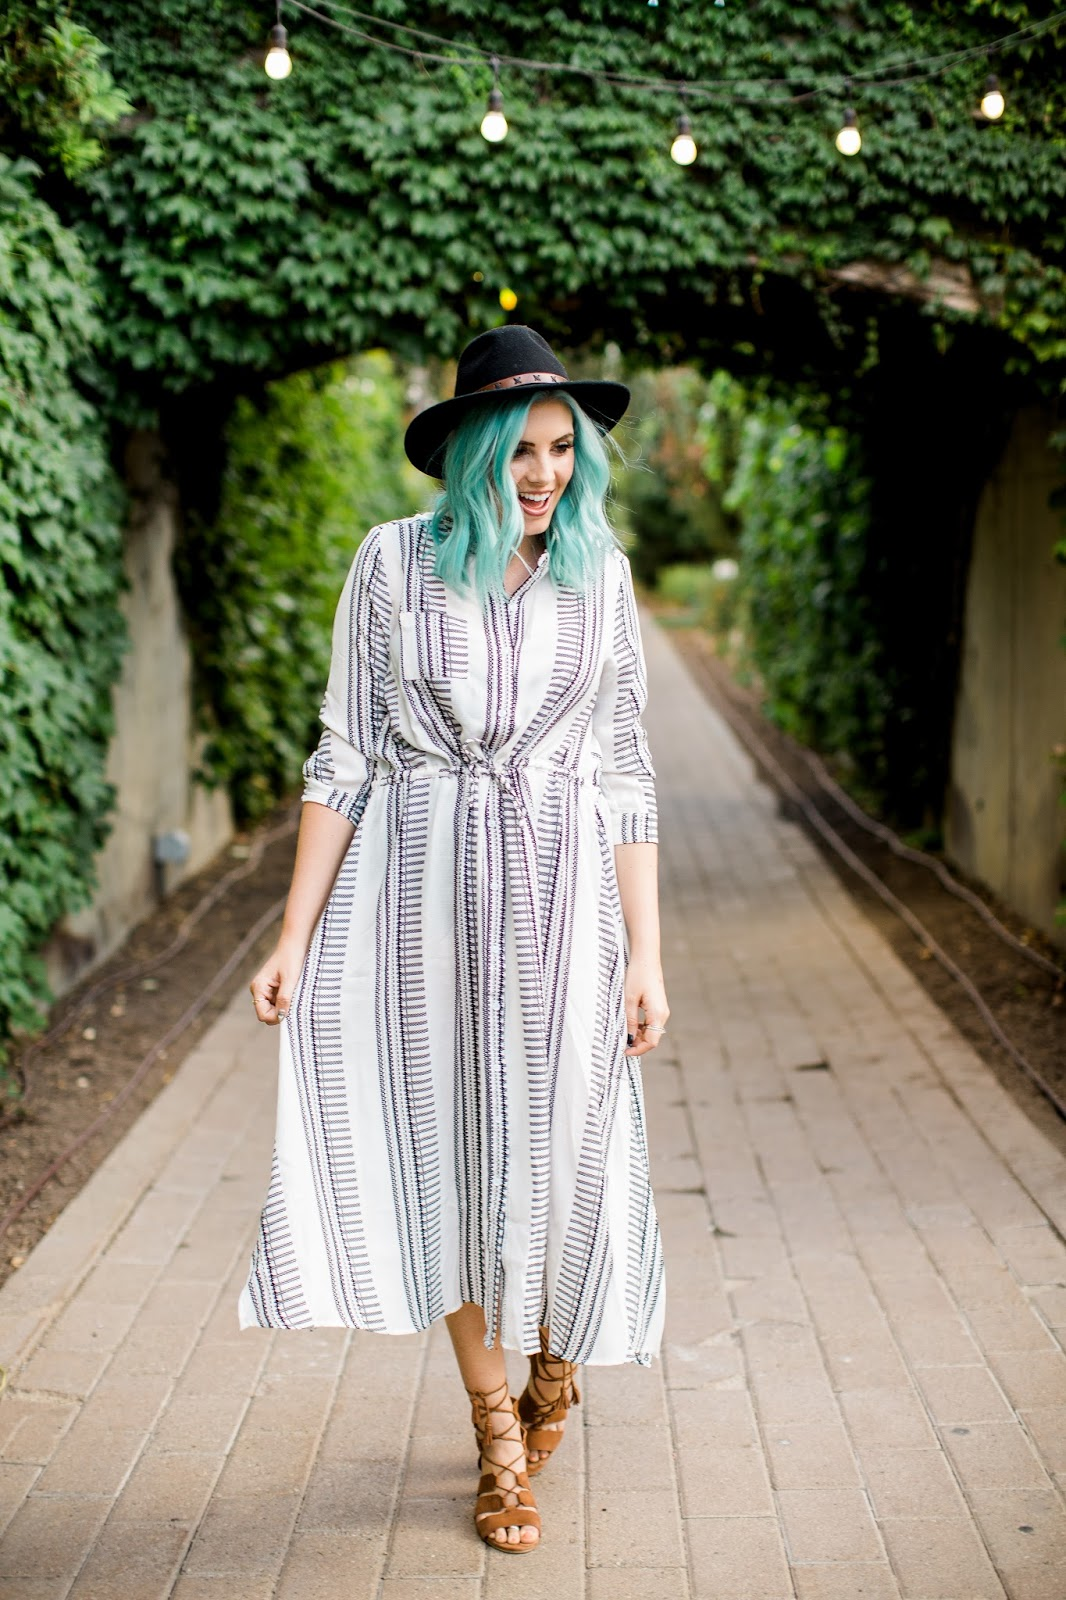 Striped Dress, Boho, Autumn Outfit